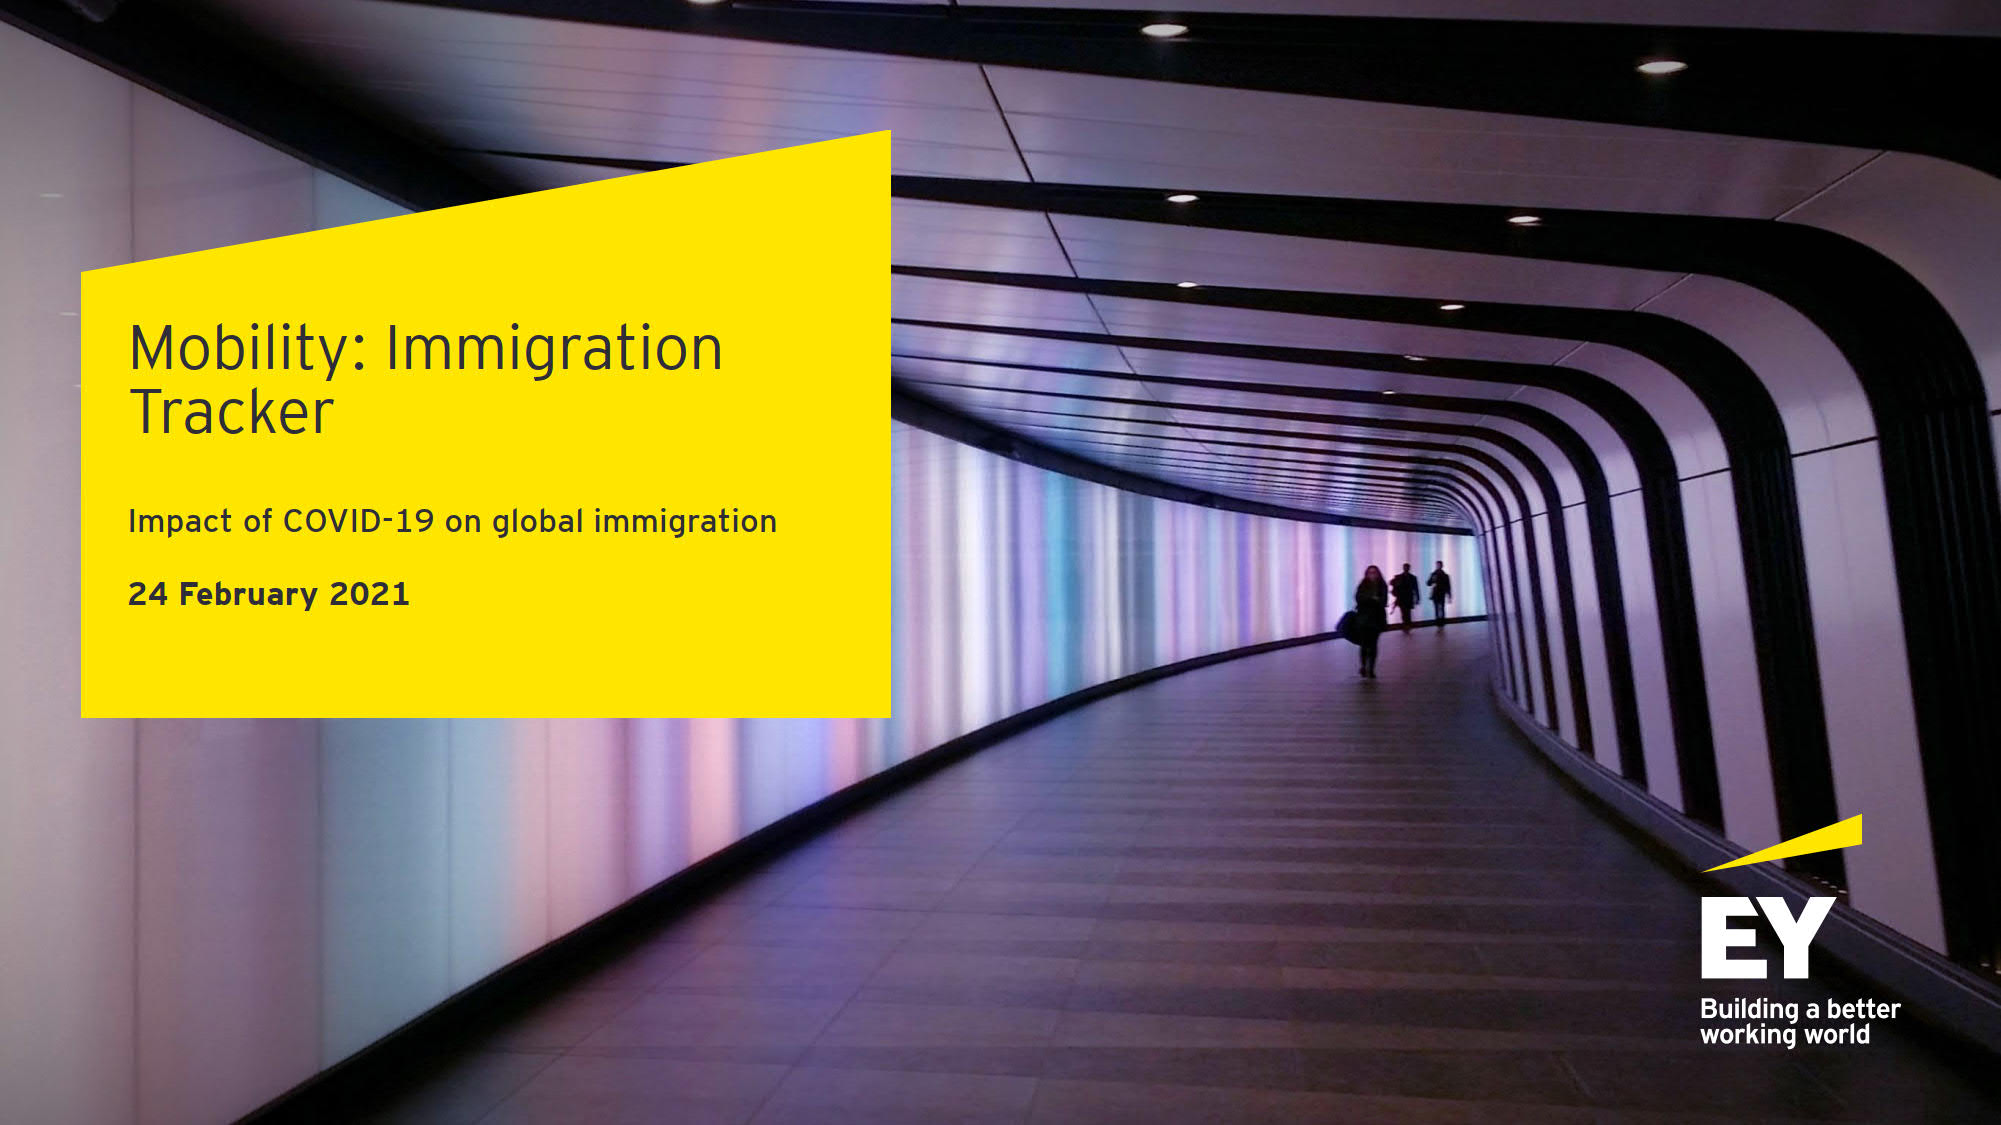 Mobility: Immigration Tracker: Impact of COVID19 on global immigration